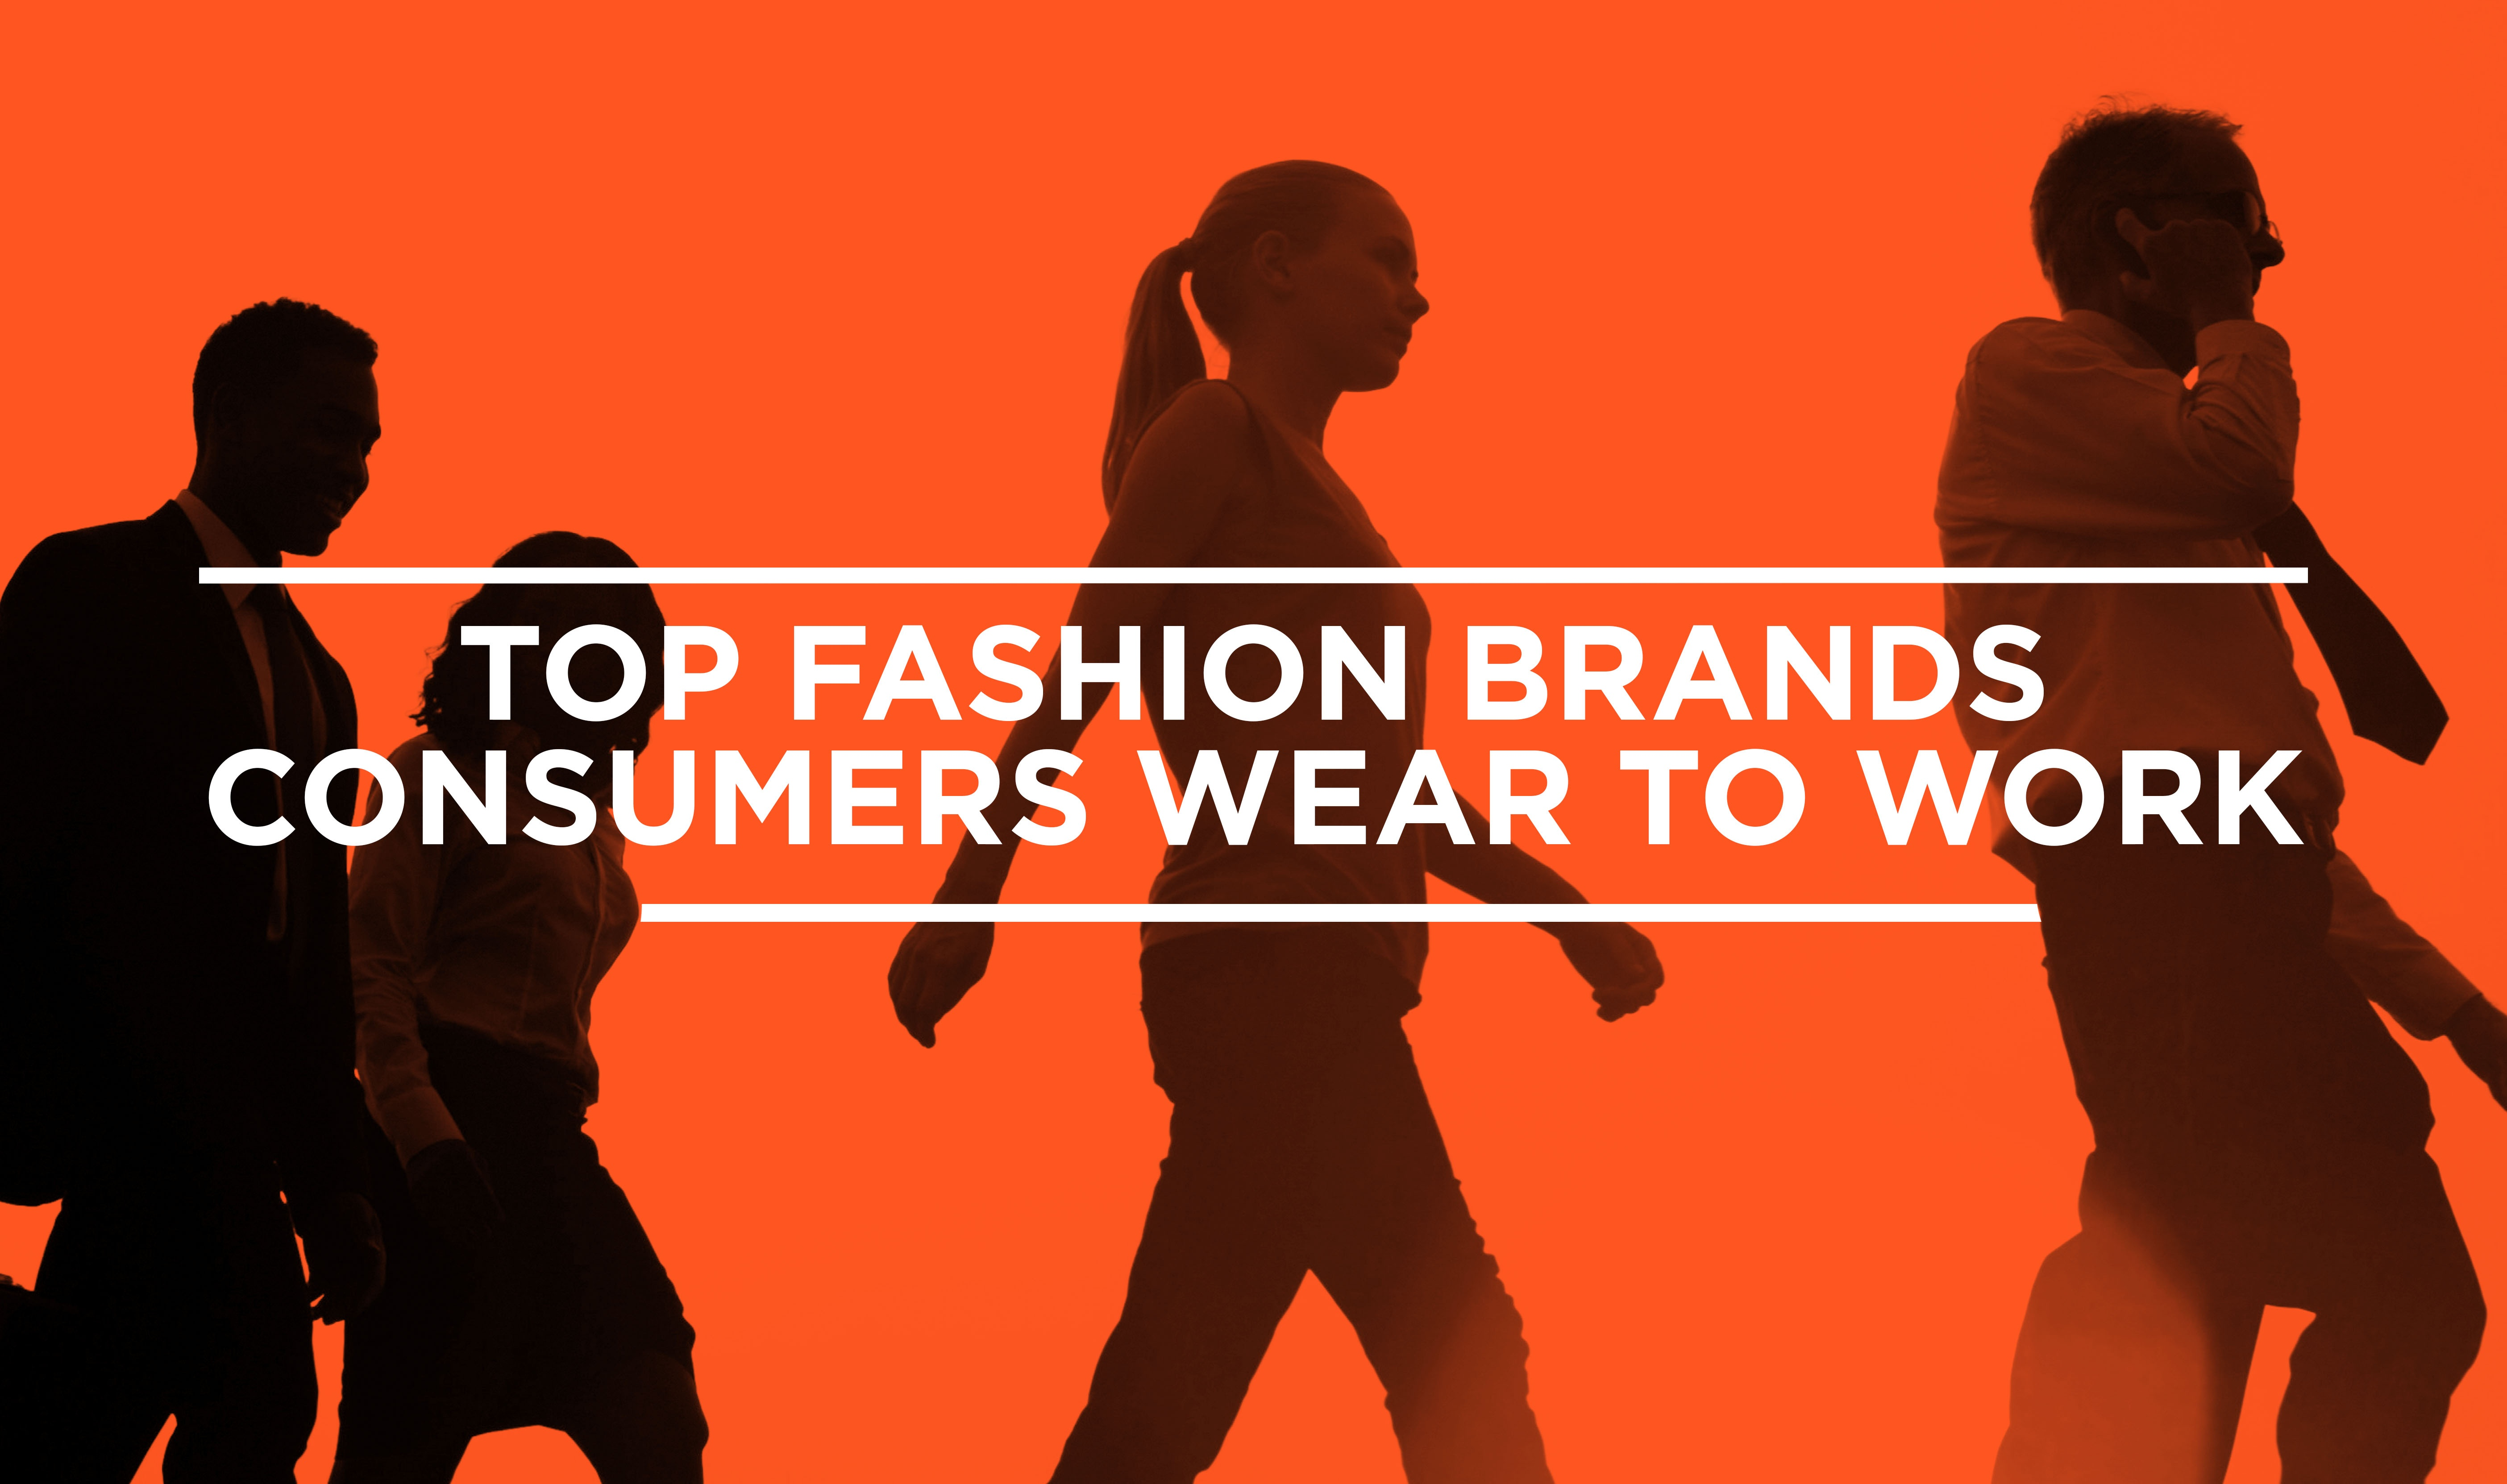 Top Fashion Brands Consumers Wear To Work